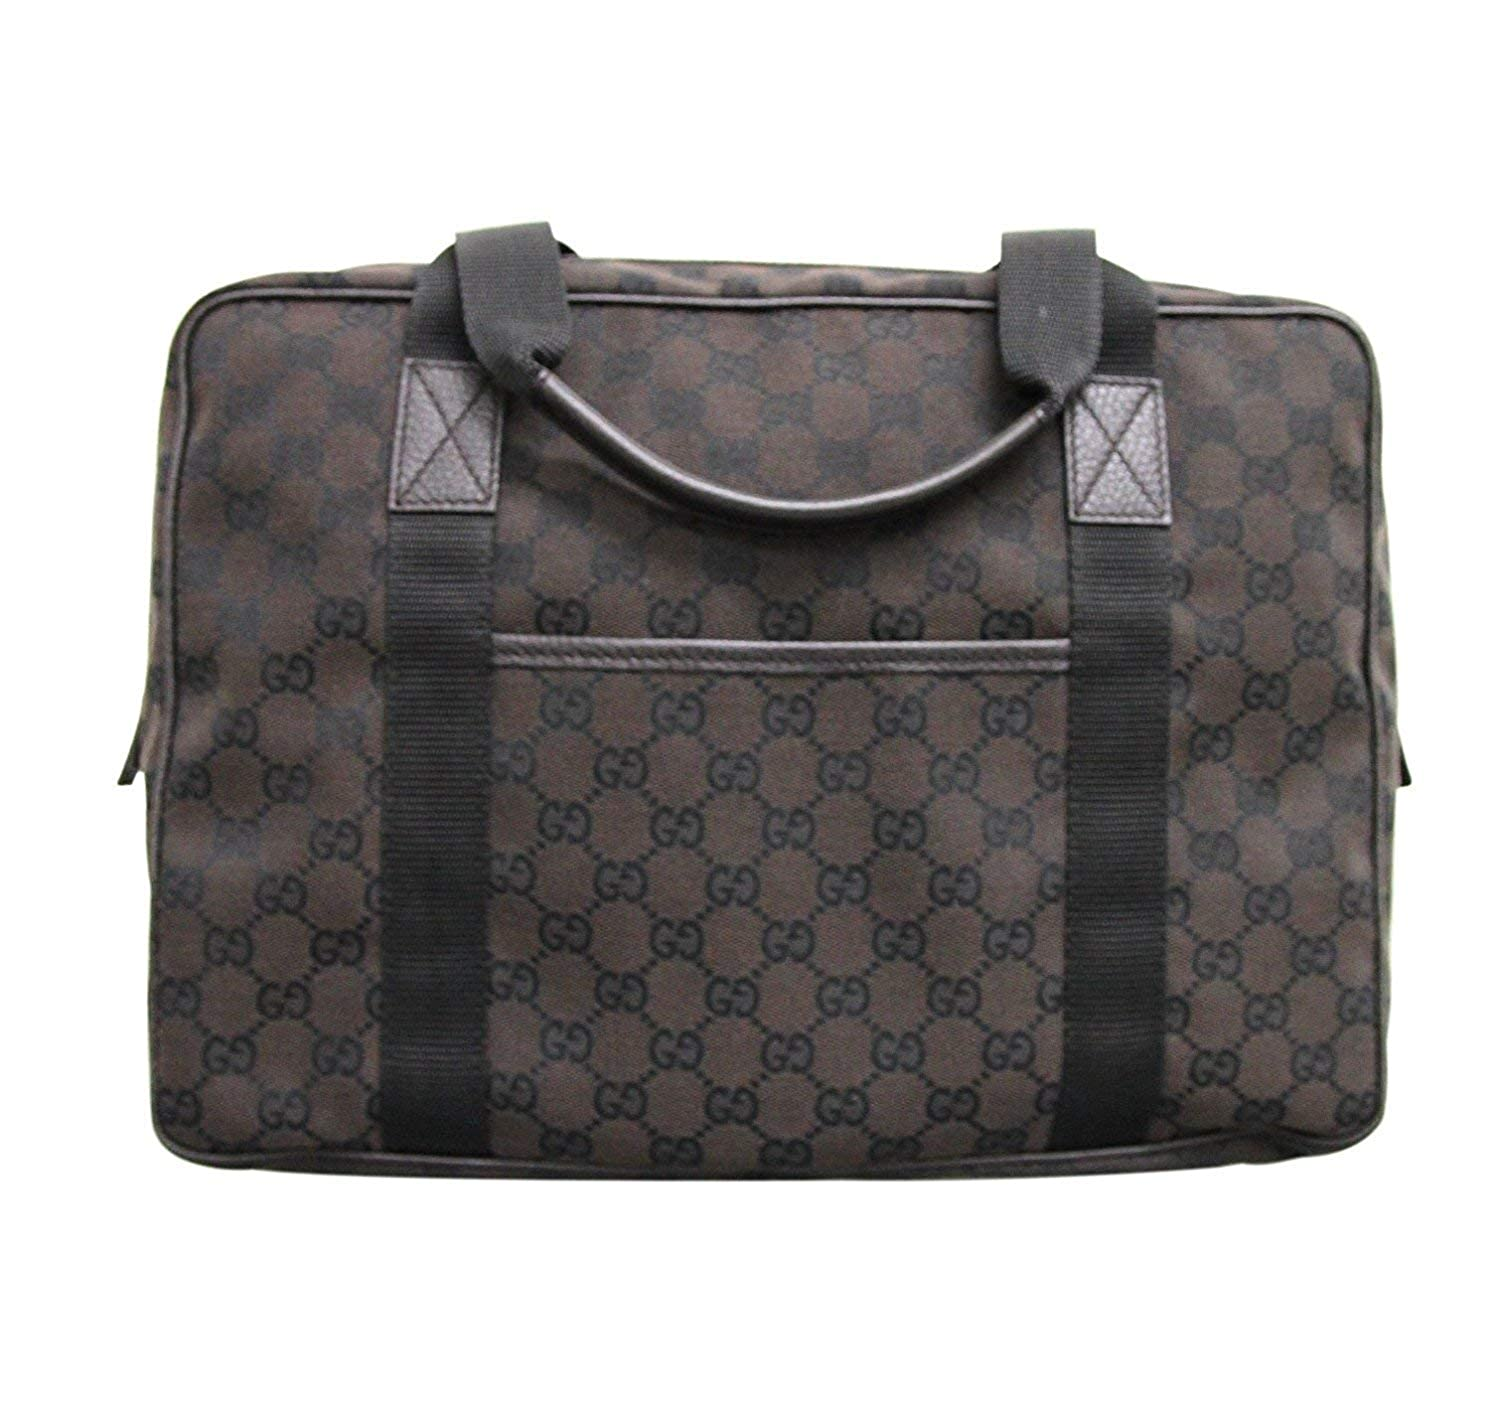 36ed35964147 Amazon.com: Gucci Unisex Brown Canvas Laptop Tote Bag Shoulder Handbag  282529: Shoes